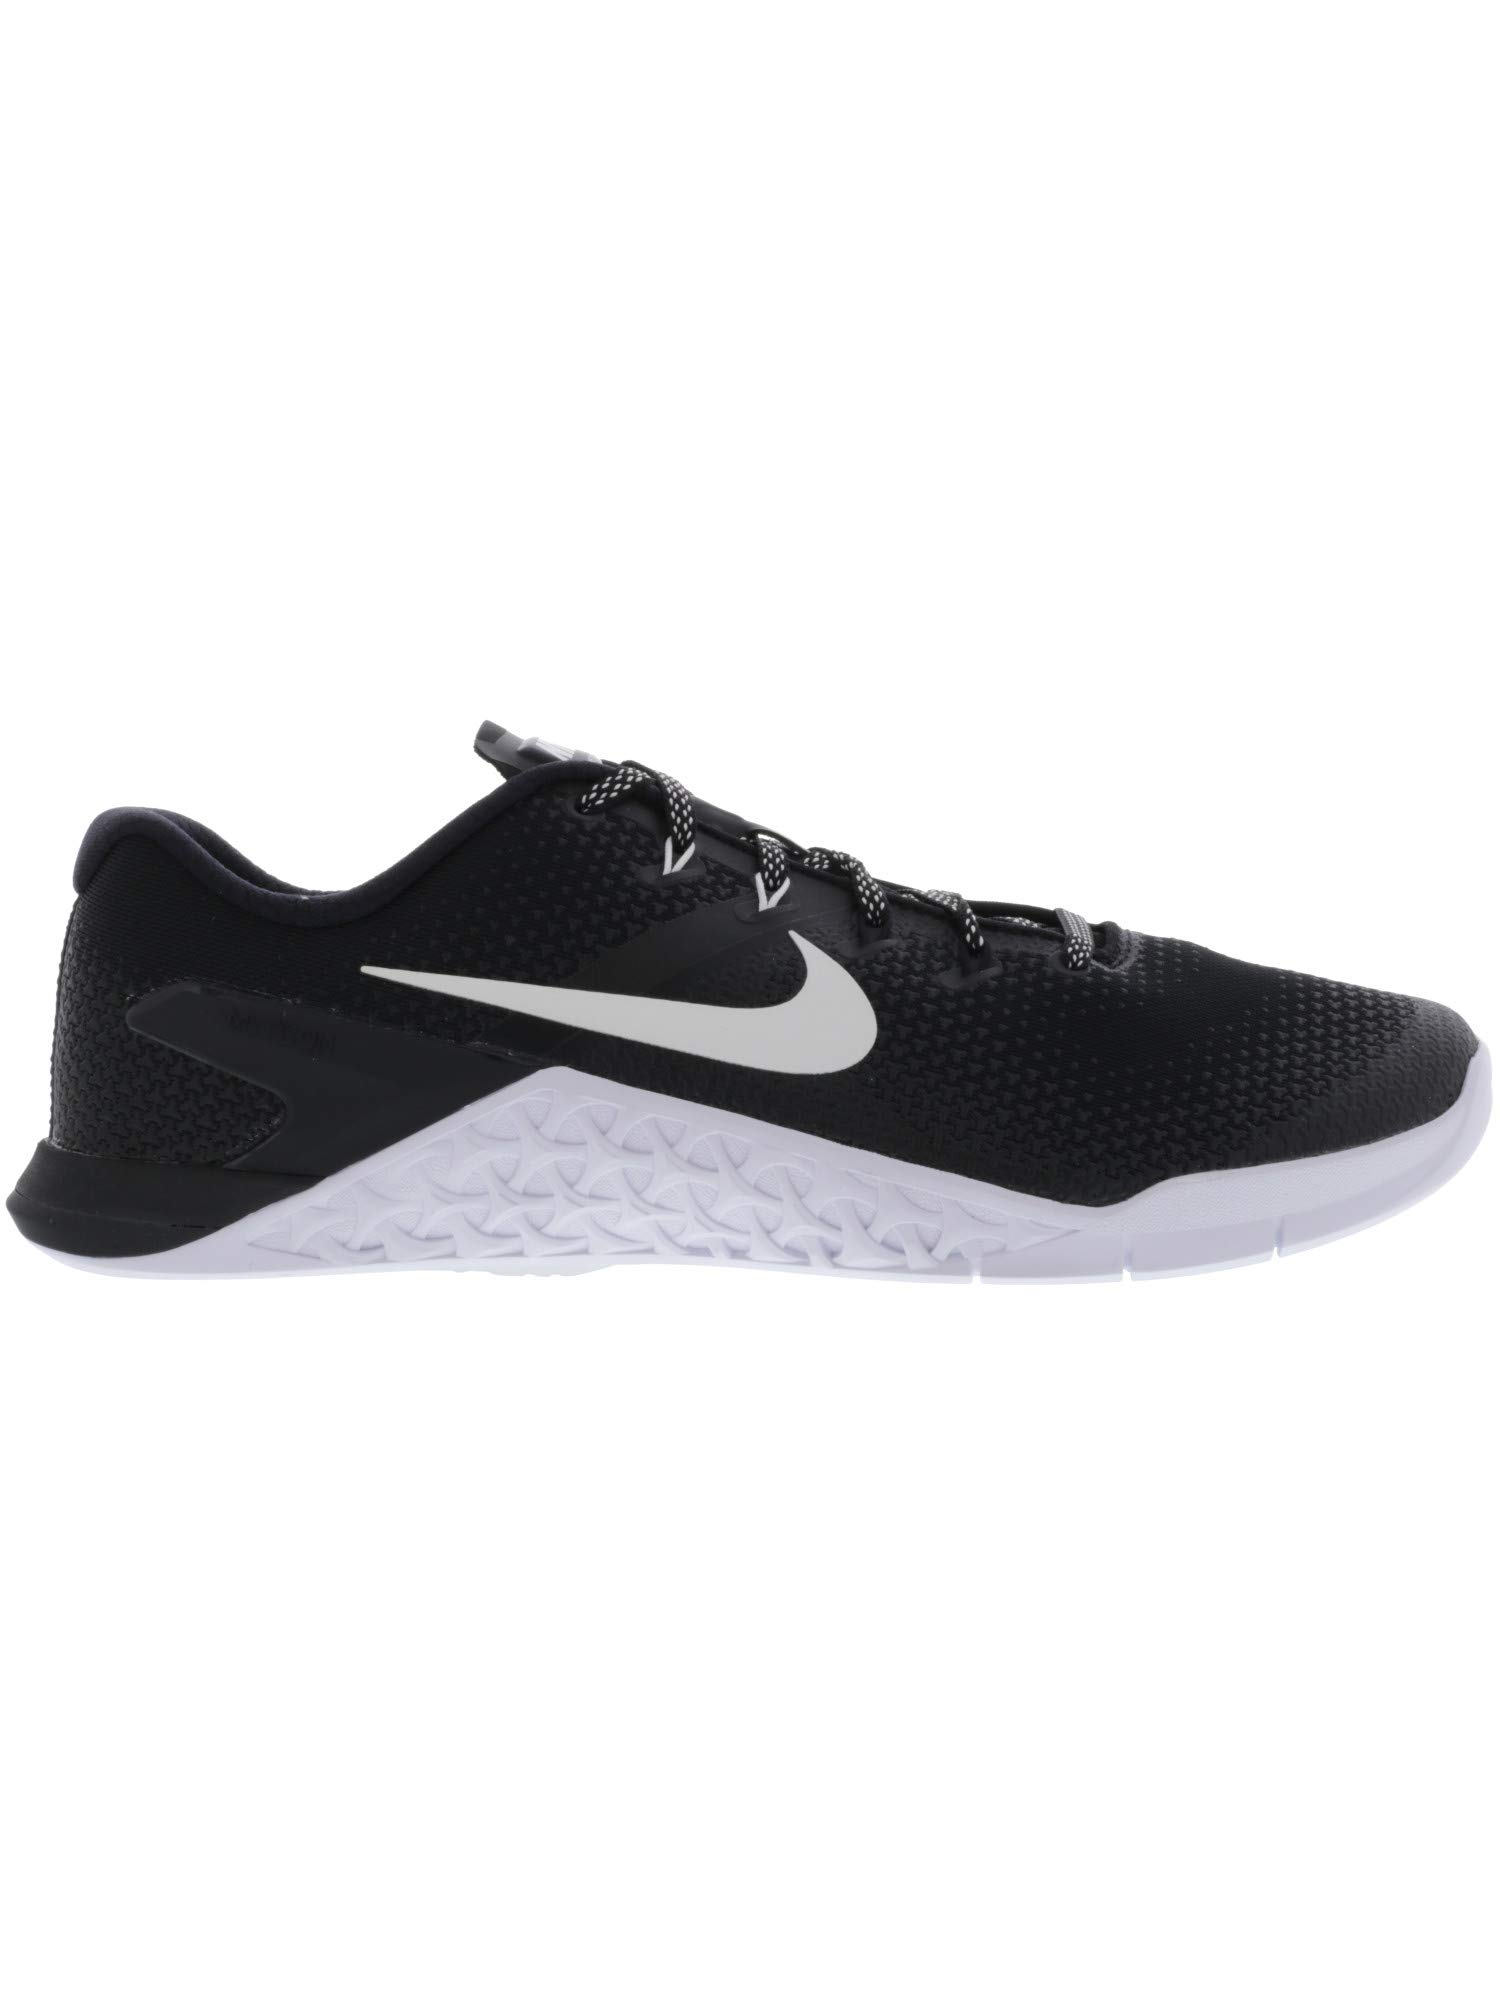 Nike Men's Metcon 4 Black/White Ankle-High Cross Trainer Shoe - 7M by Nike (Image #4)